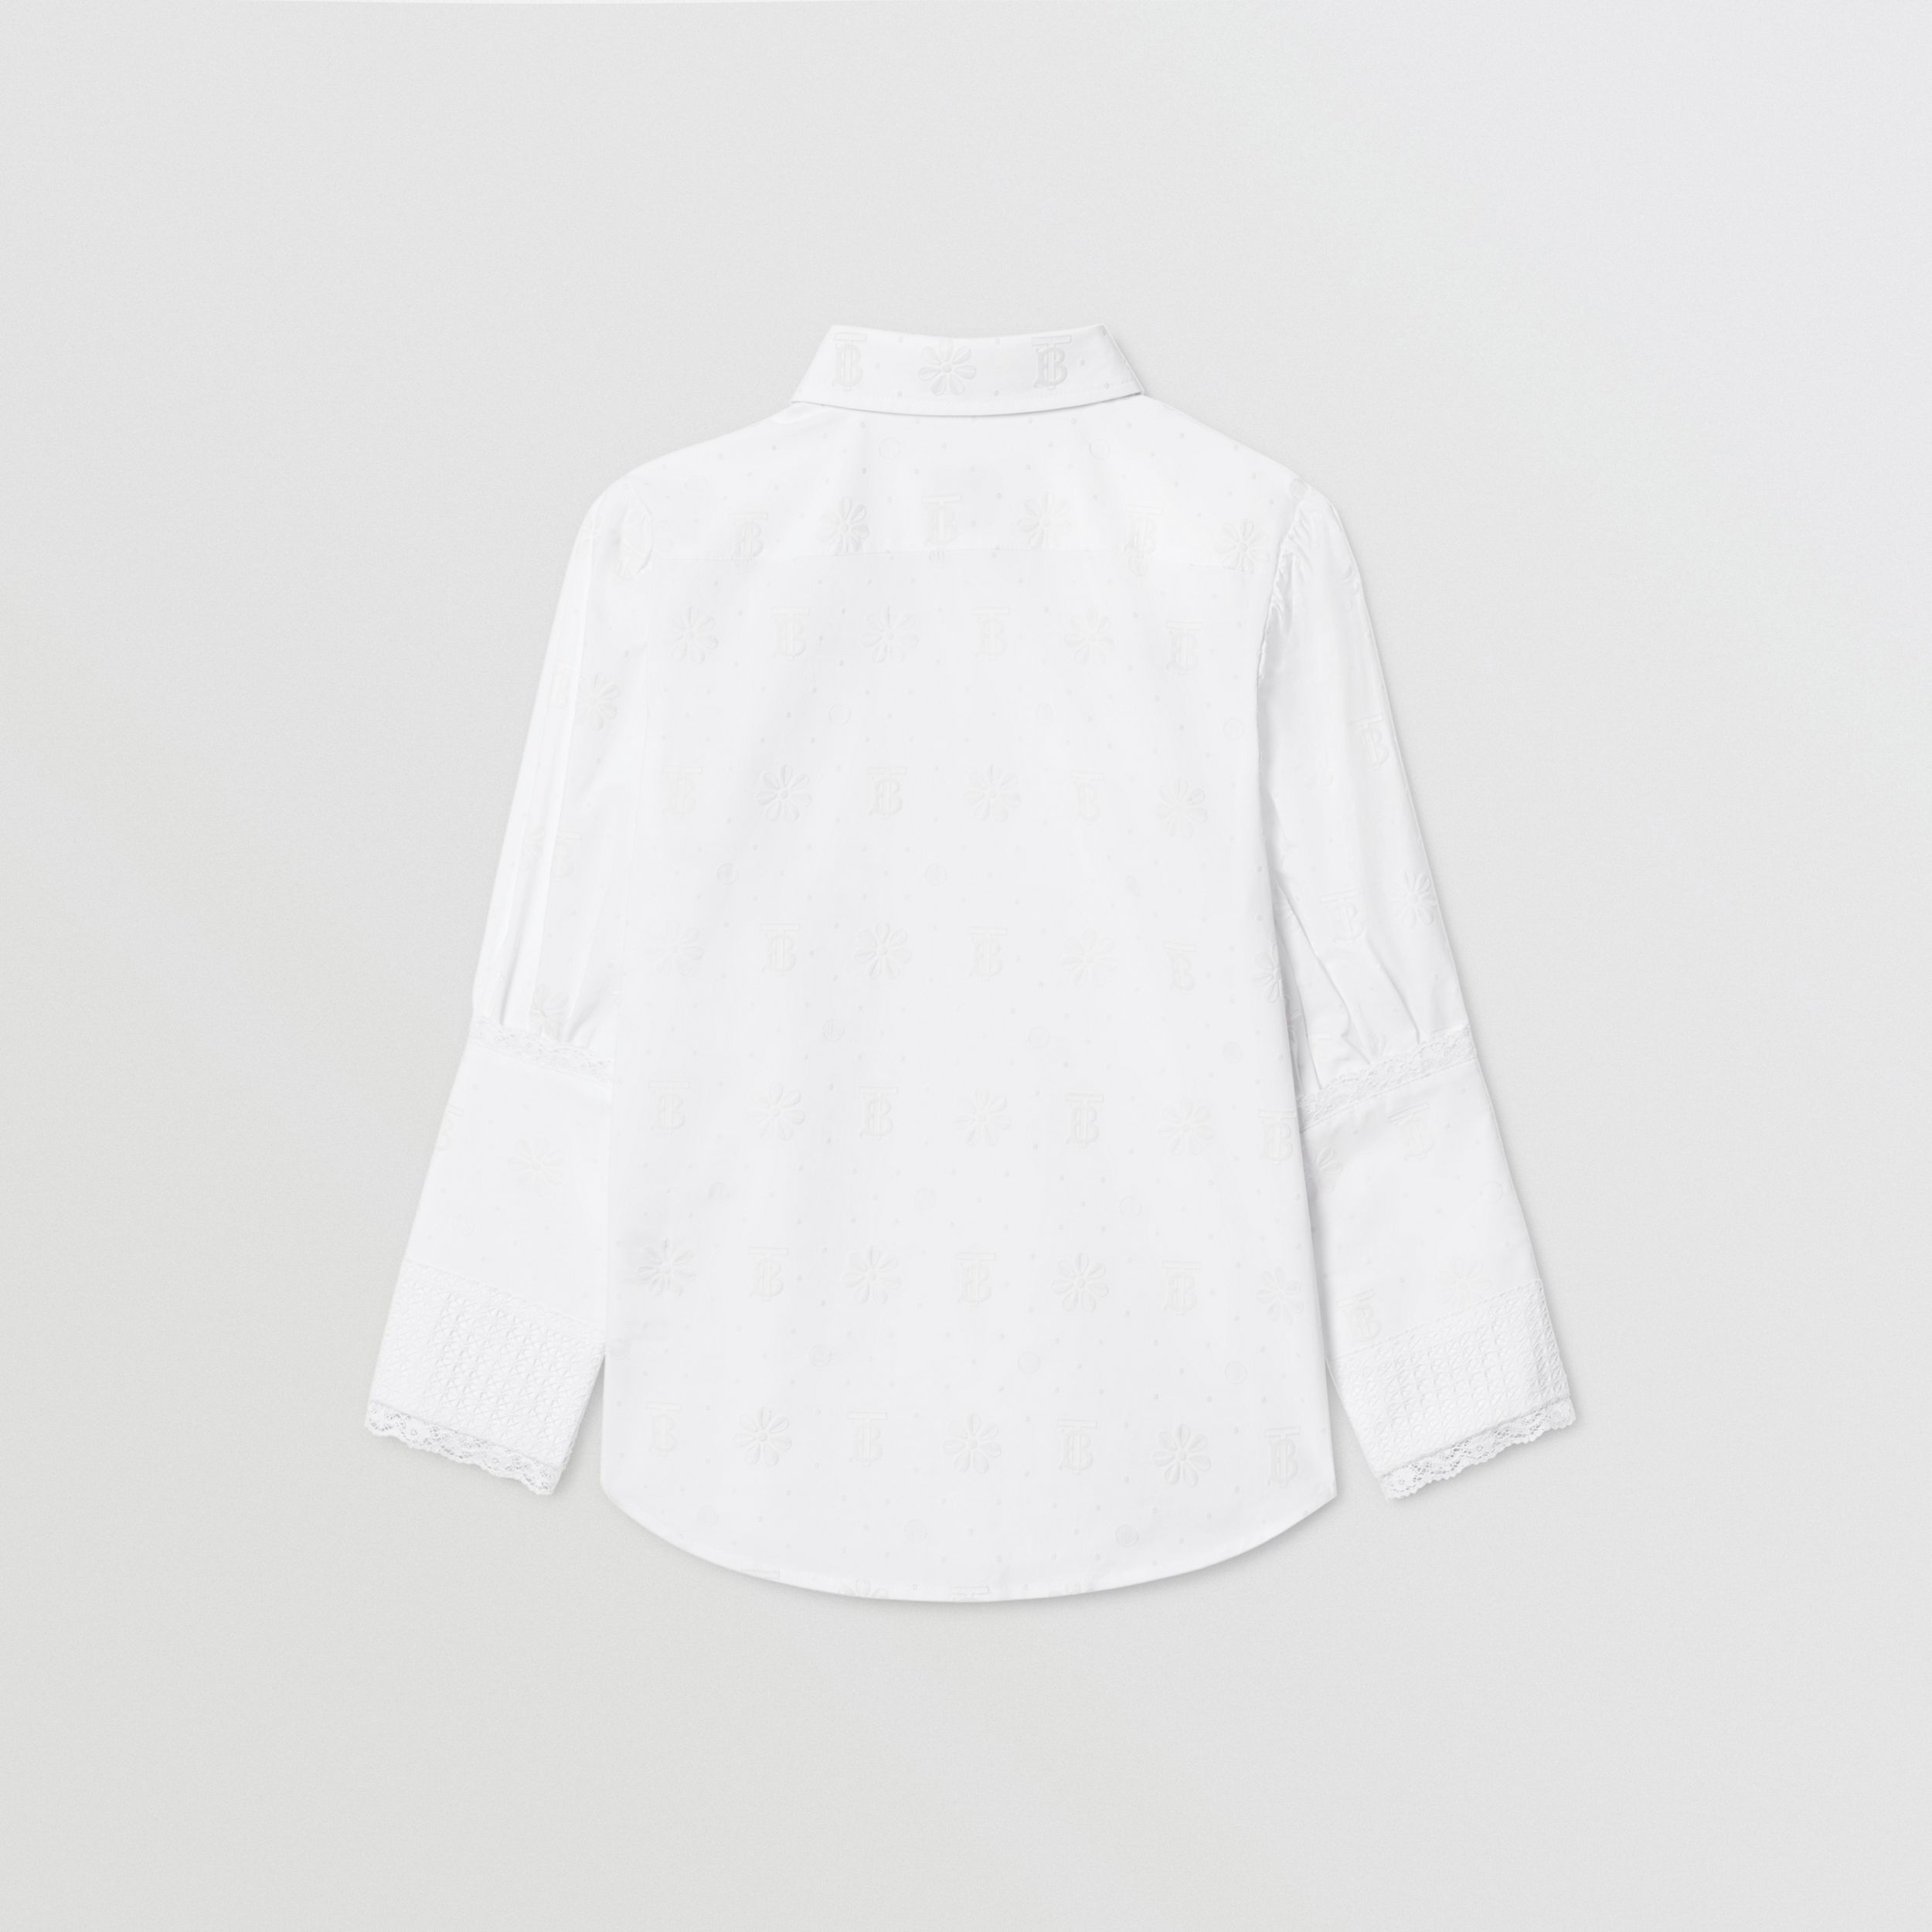 Puff-sleeve Fil Coupé Cotton Blend Shirt in White | Burberry - 4